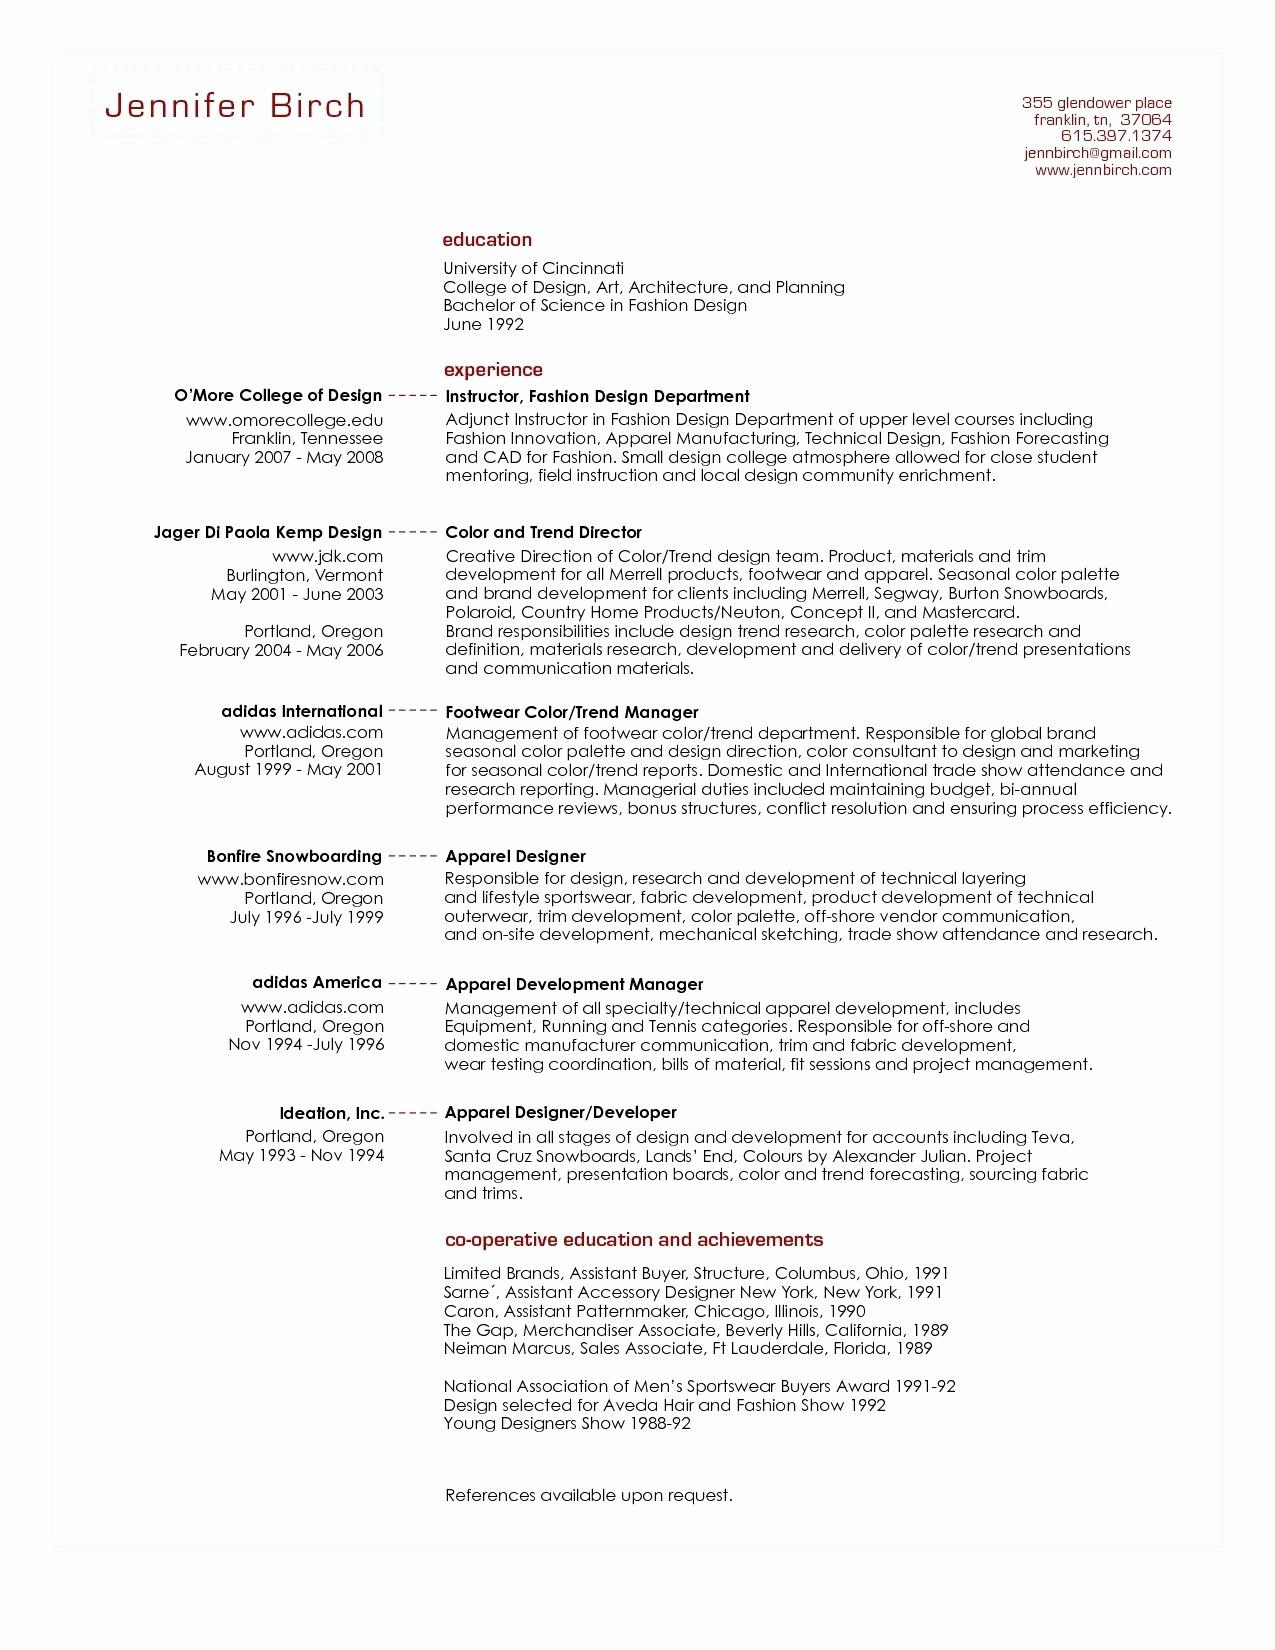 Architecture Student Resume - Resume format for Bba Graduates Luxury Law Student Resume Template